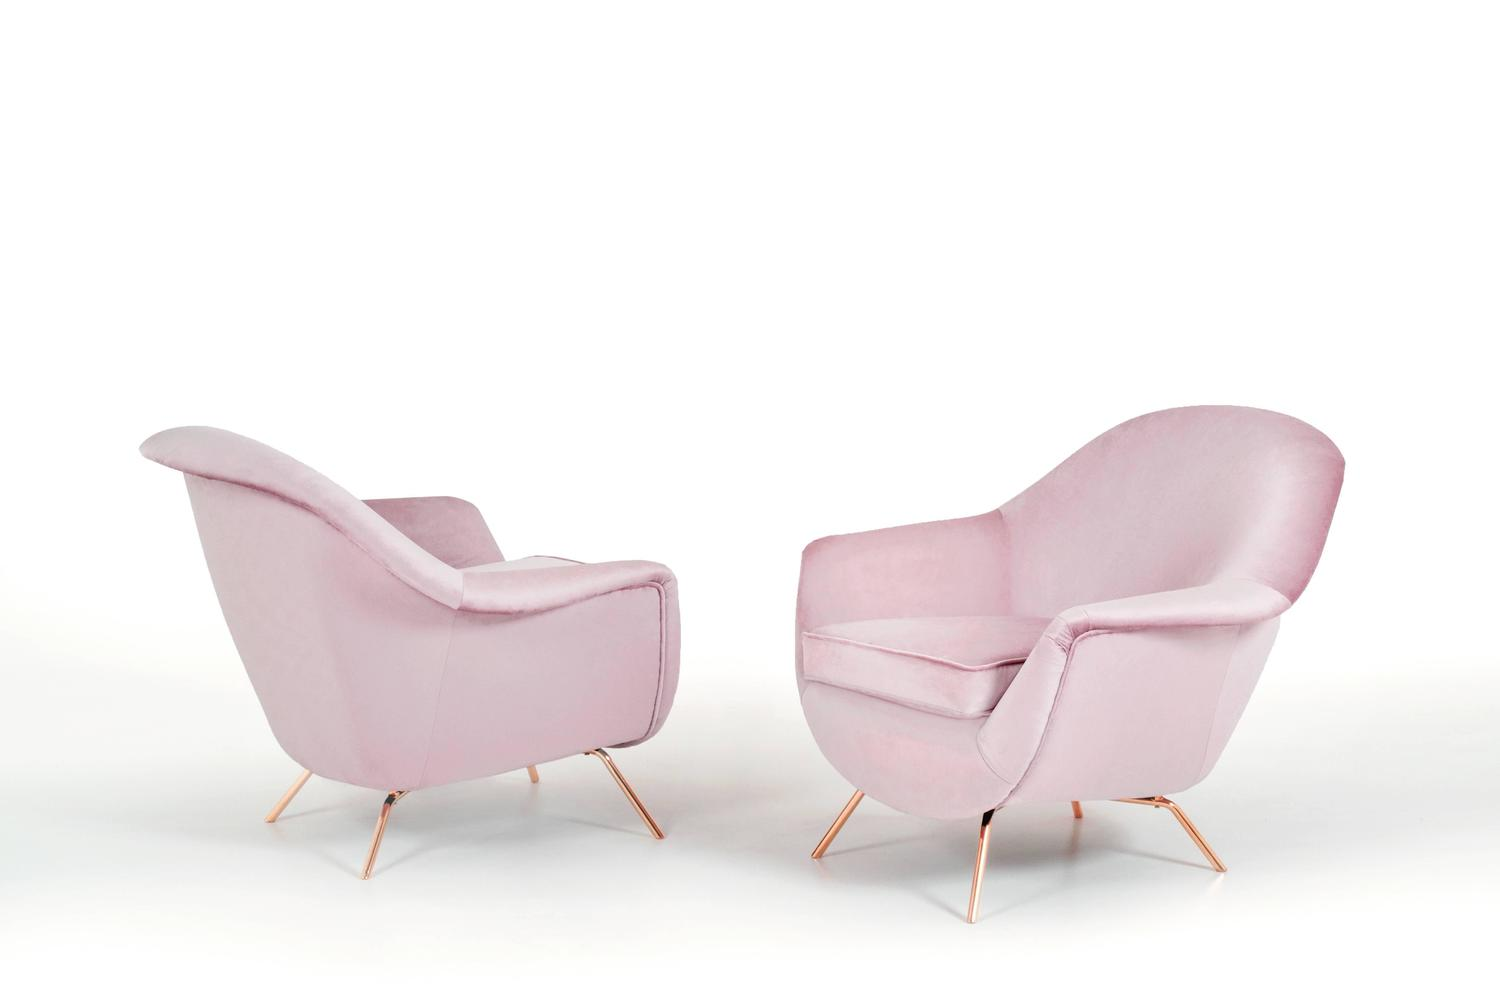 Pair of Old Pink Italian Lounge Chairs 1950s at 1stdibs